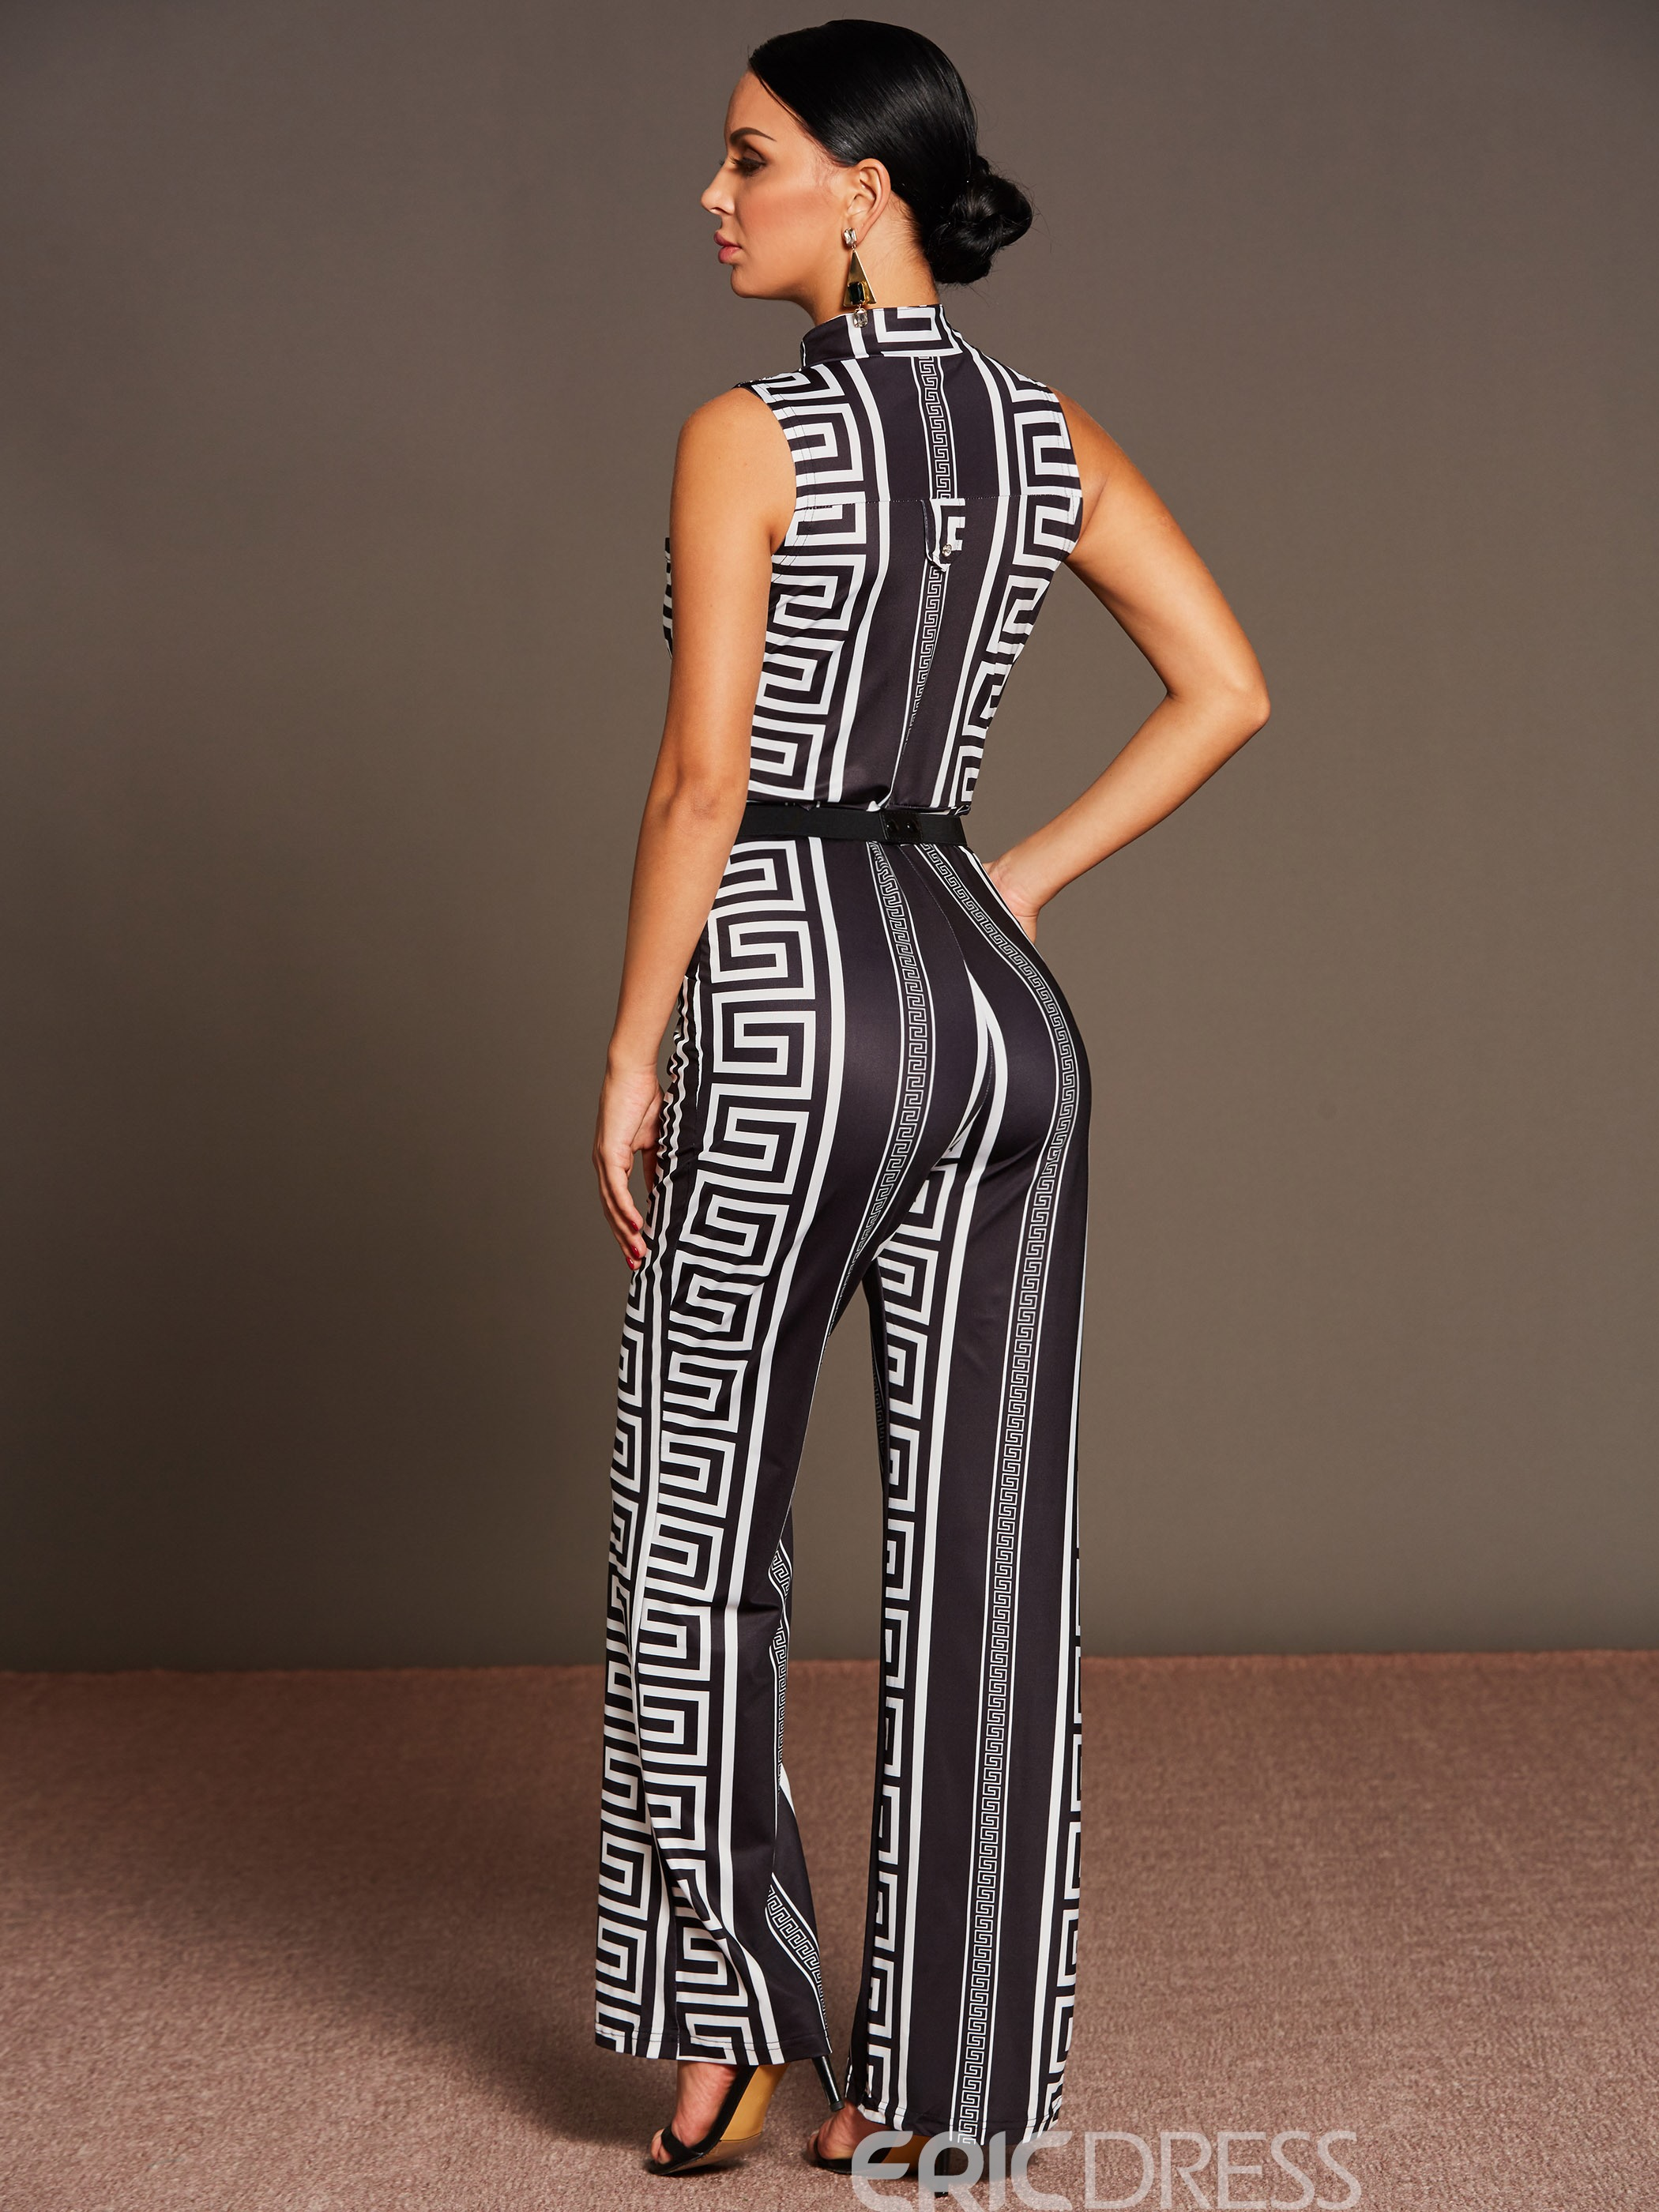 Ericdress High-Waist Patchwork Belt Print Jumpsuits Pants